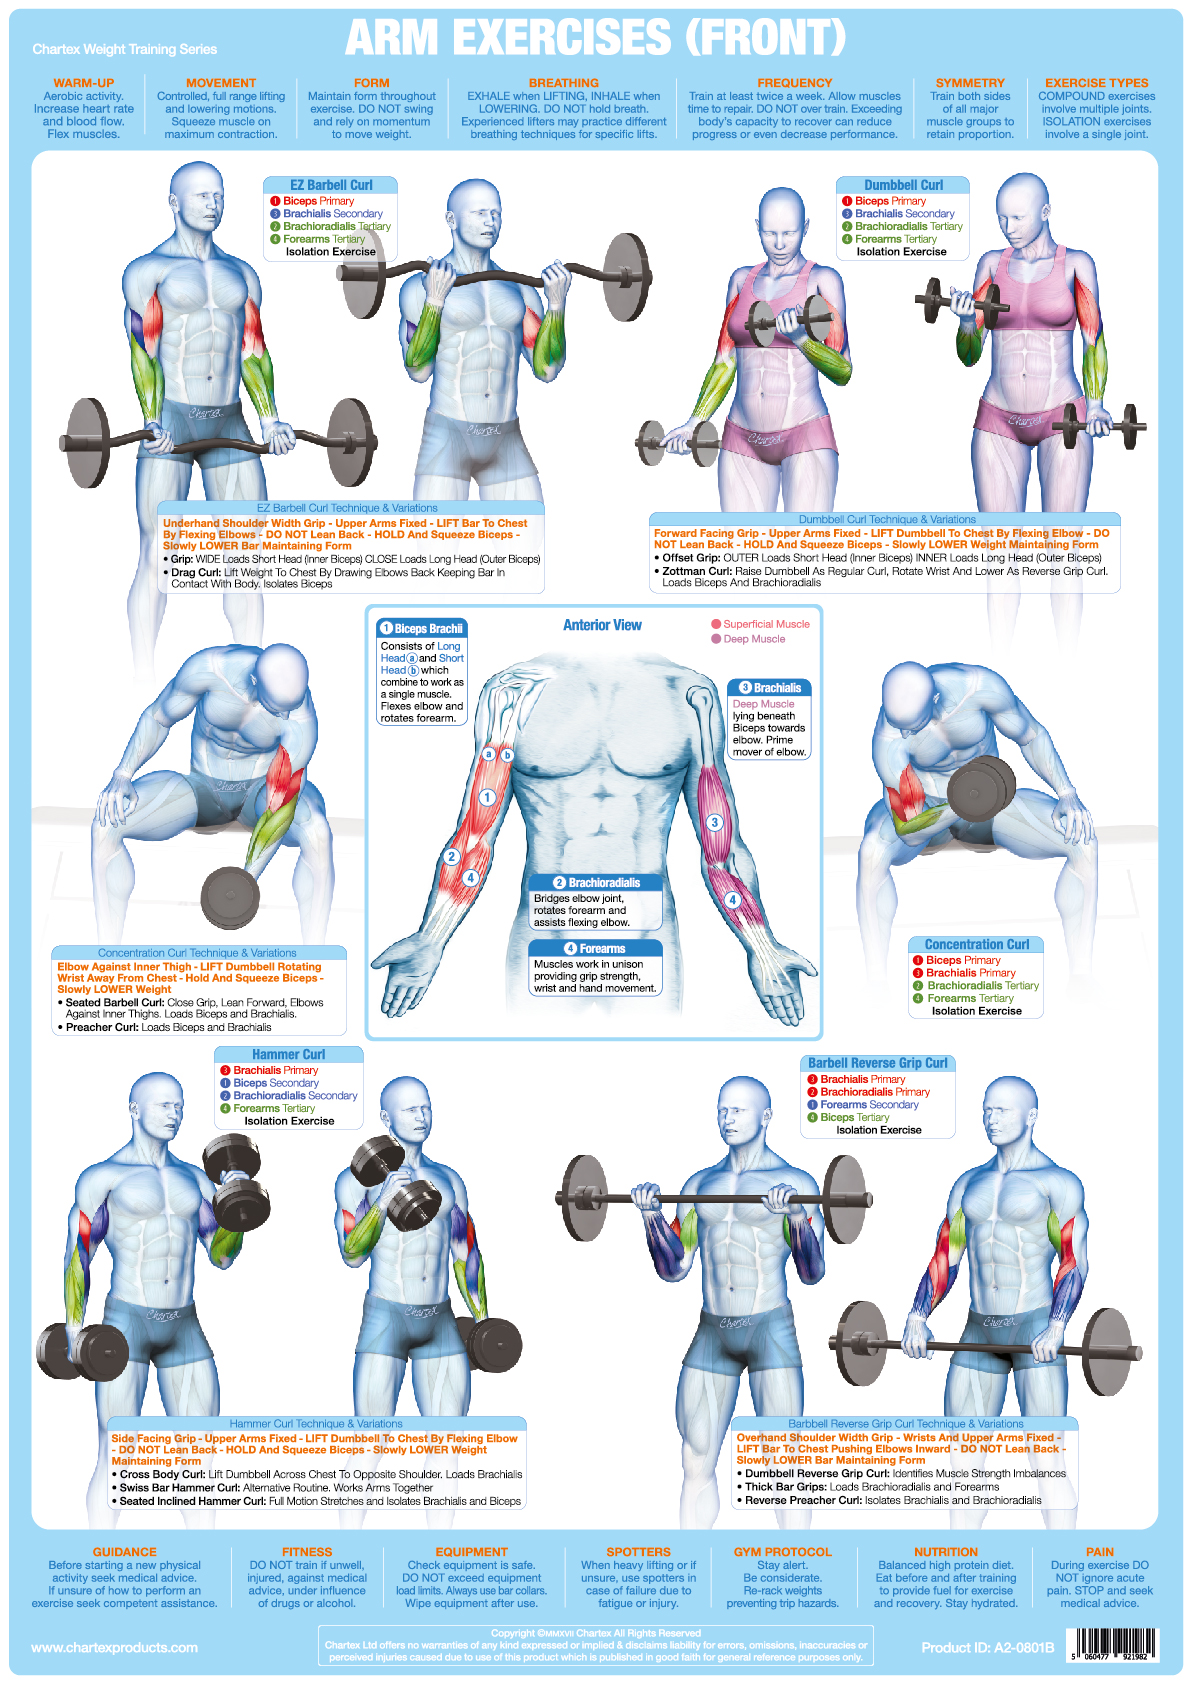 Arm Muscles (Front) Weight Training - A1 Chart